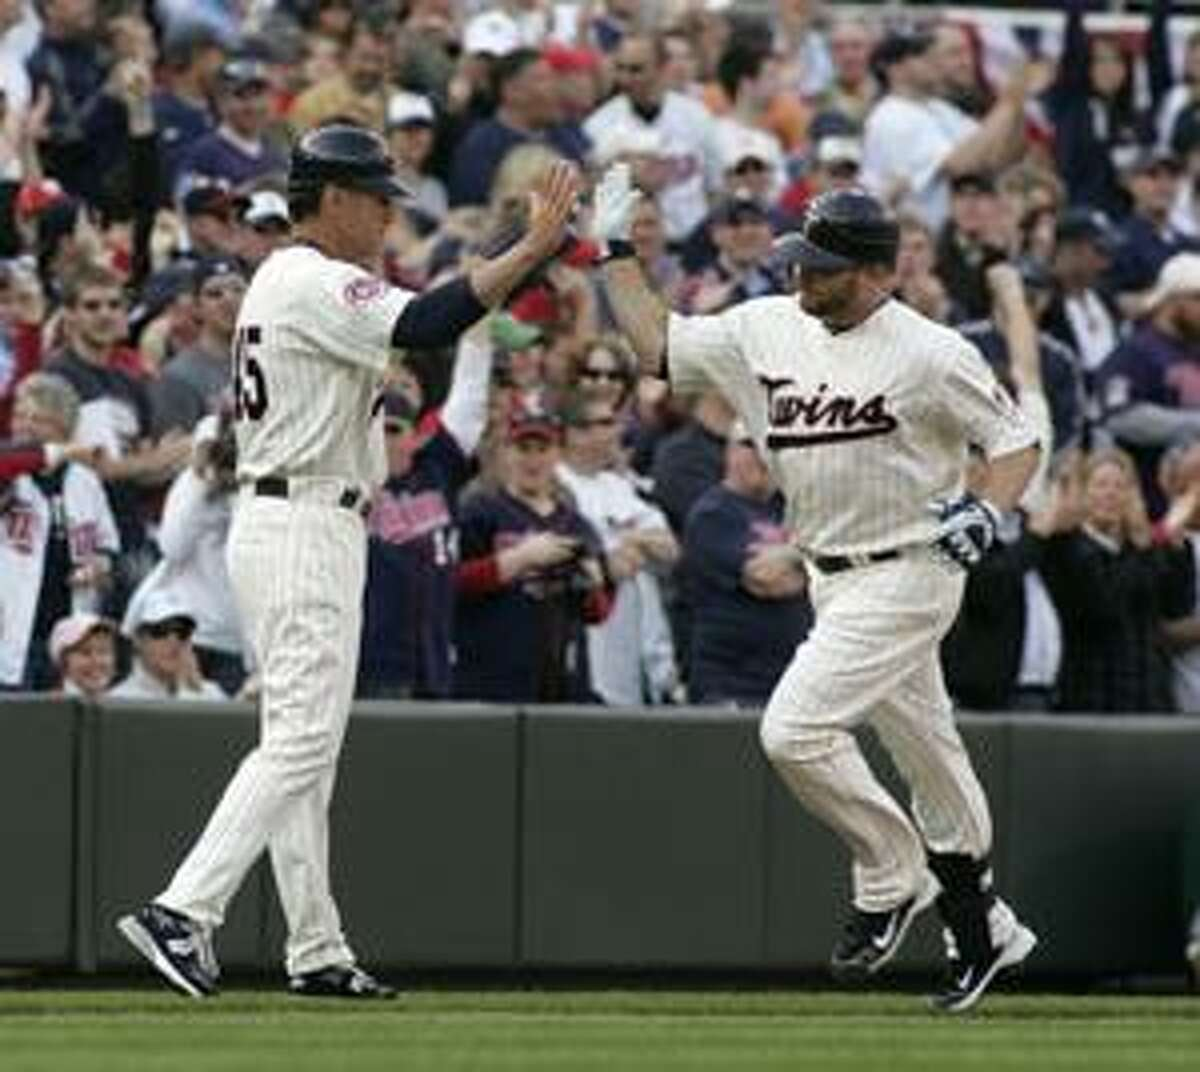 Minnesota Twins' Jason Kubel, right, is congratulated by third base coach Scott Ullger after hitting a solo home run during the seventh inning of the Twins' home opener baseball game against the Boston Red Sox, Monday, April 12, 2010 in Minneapolis. The Twins won 5-2. (AP Photo/Paul Battaglia)